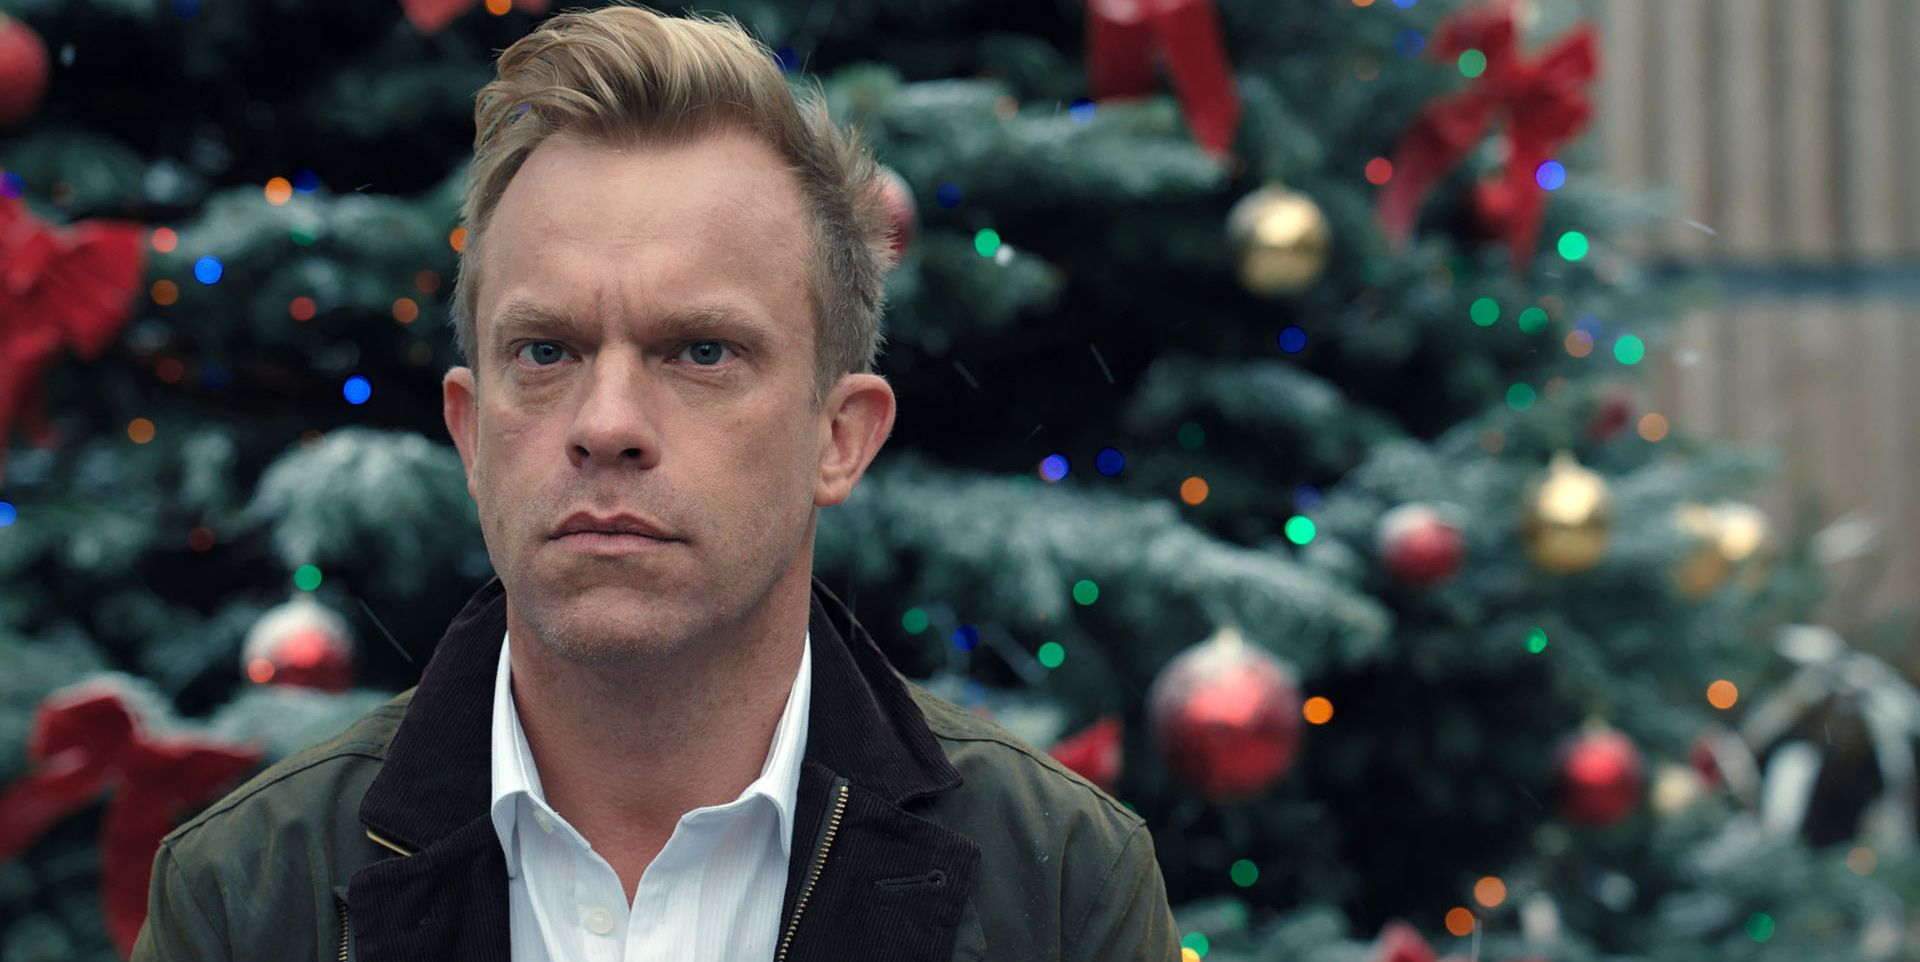 Dylan Keogh at Christmas in Casualty